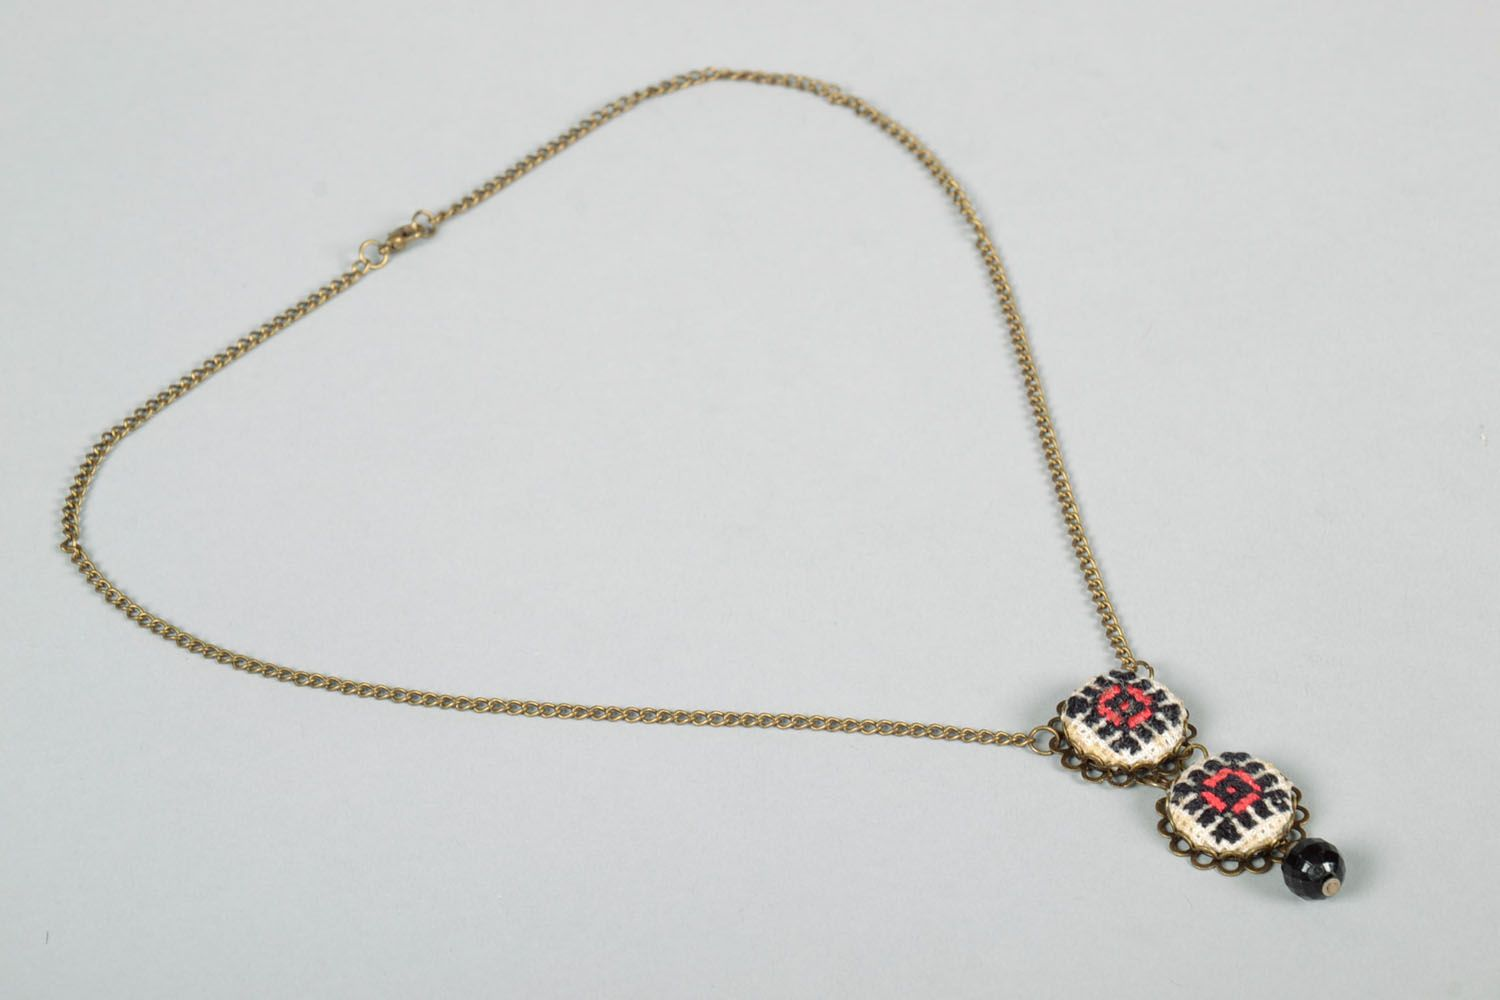 Pendant on a chain photo 5